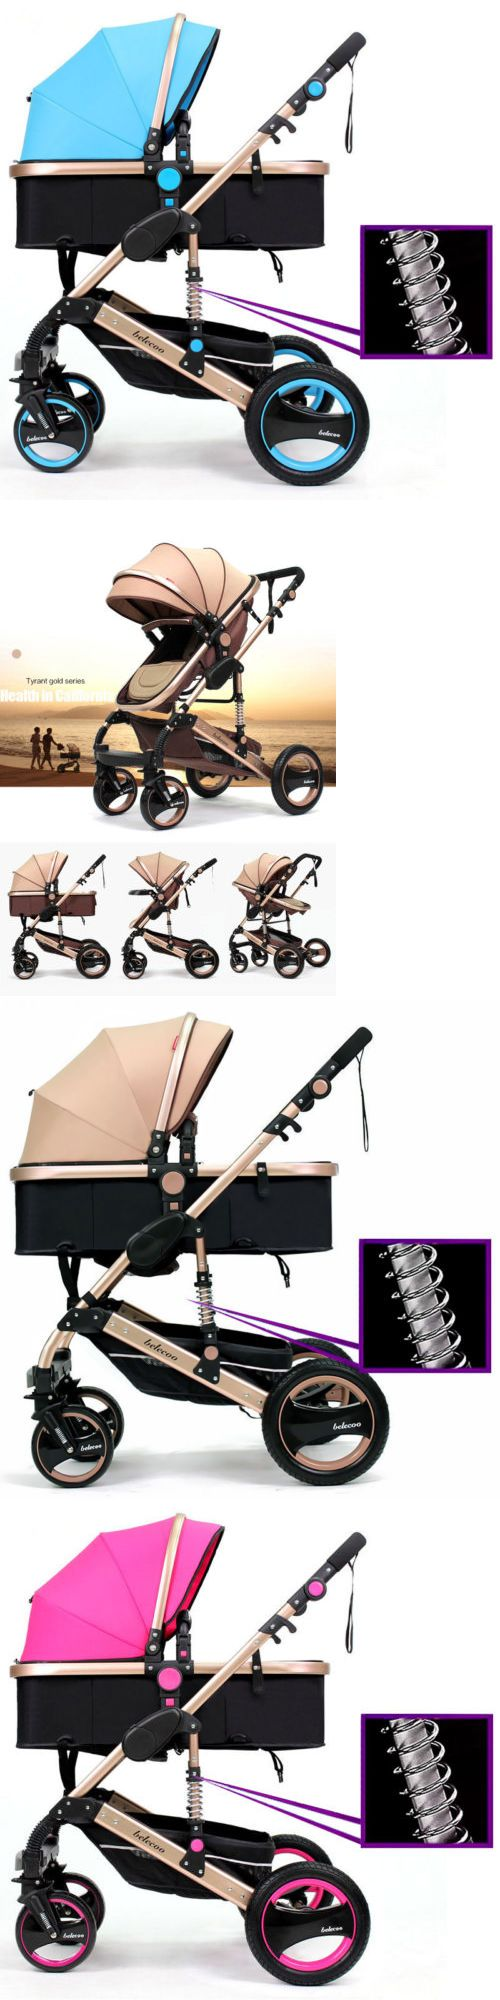 Strollers 66700: Belecoo Baby Carriage Foldable Travel Stroller Buggy Pushchairs Pram Outdoor Fs -> BUY IT NOW ONLY: $189.99 on eBay!